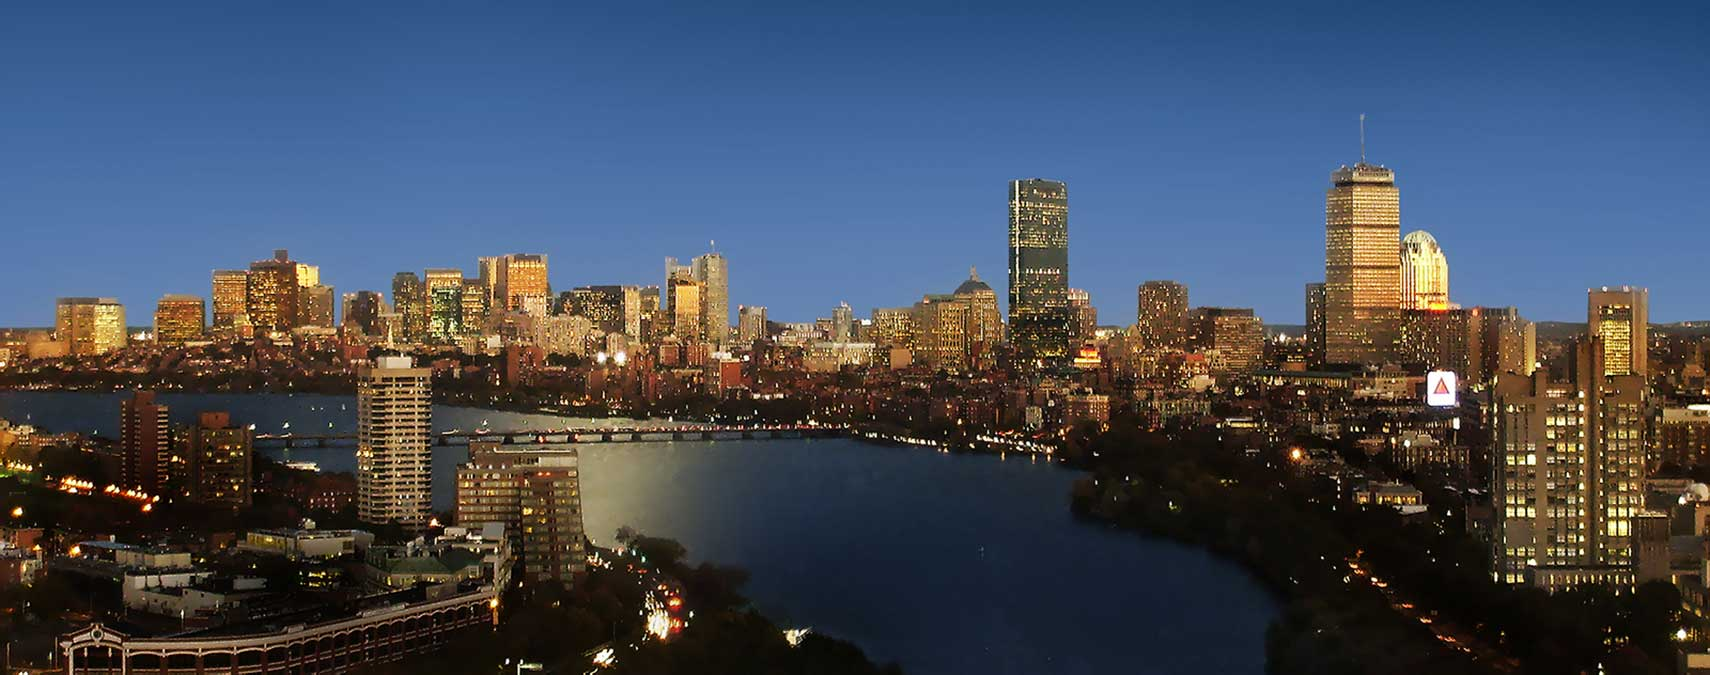 Google Map Of The City Of Boston USA Nations Online Project - Boston in usa map